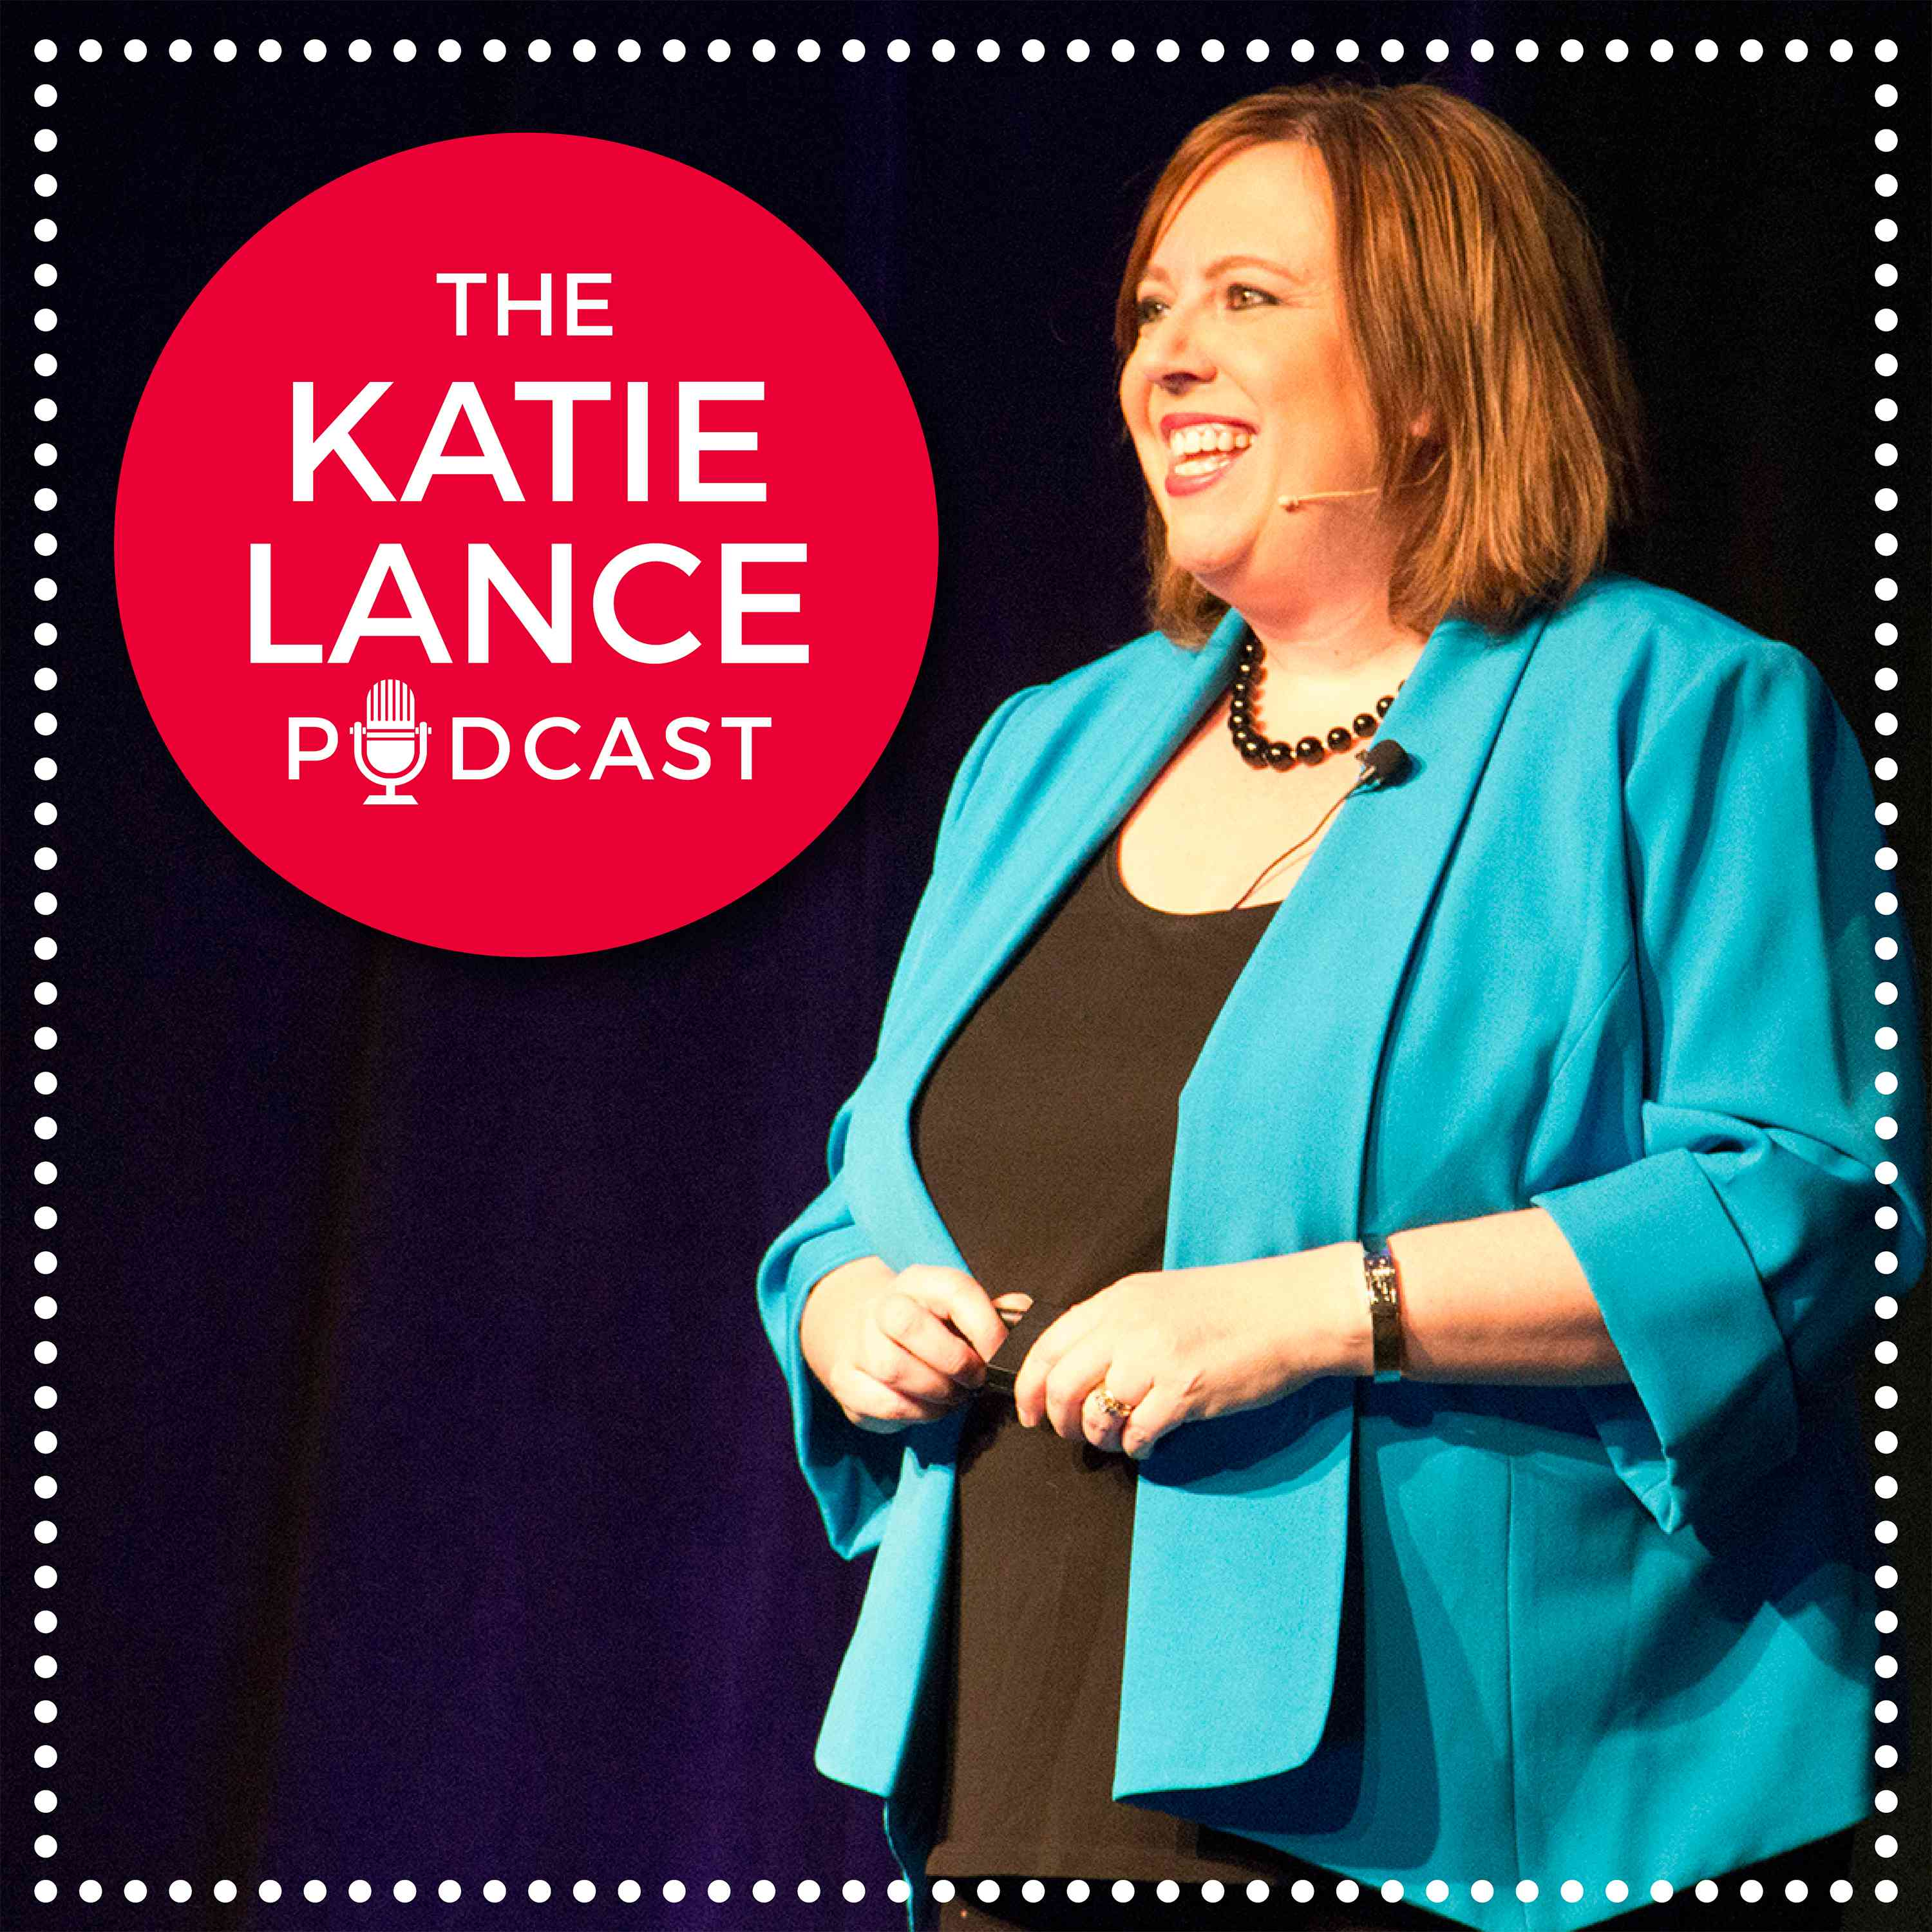 The Katie Lance Podcast show art